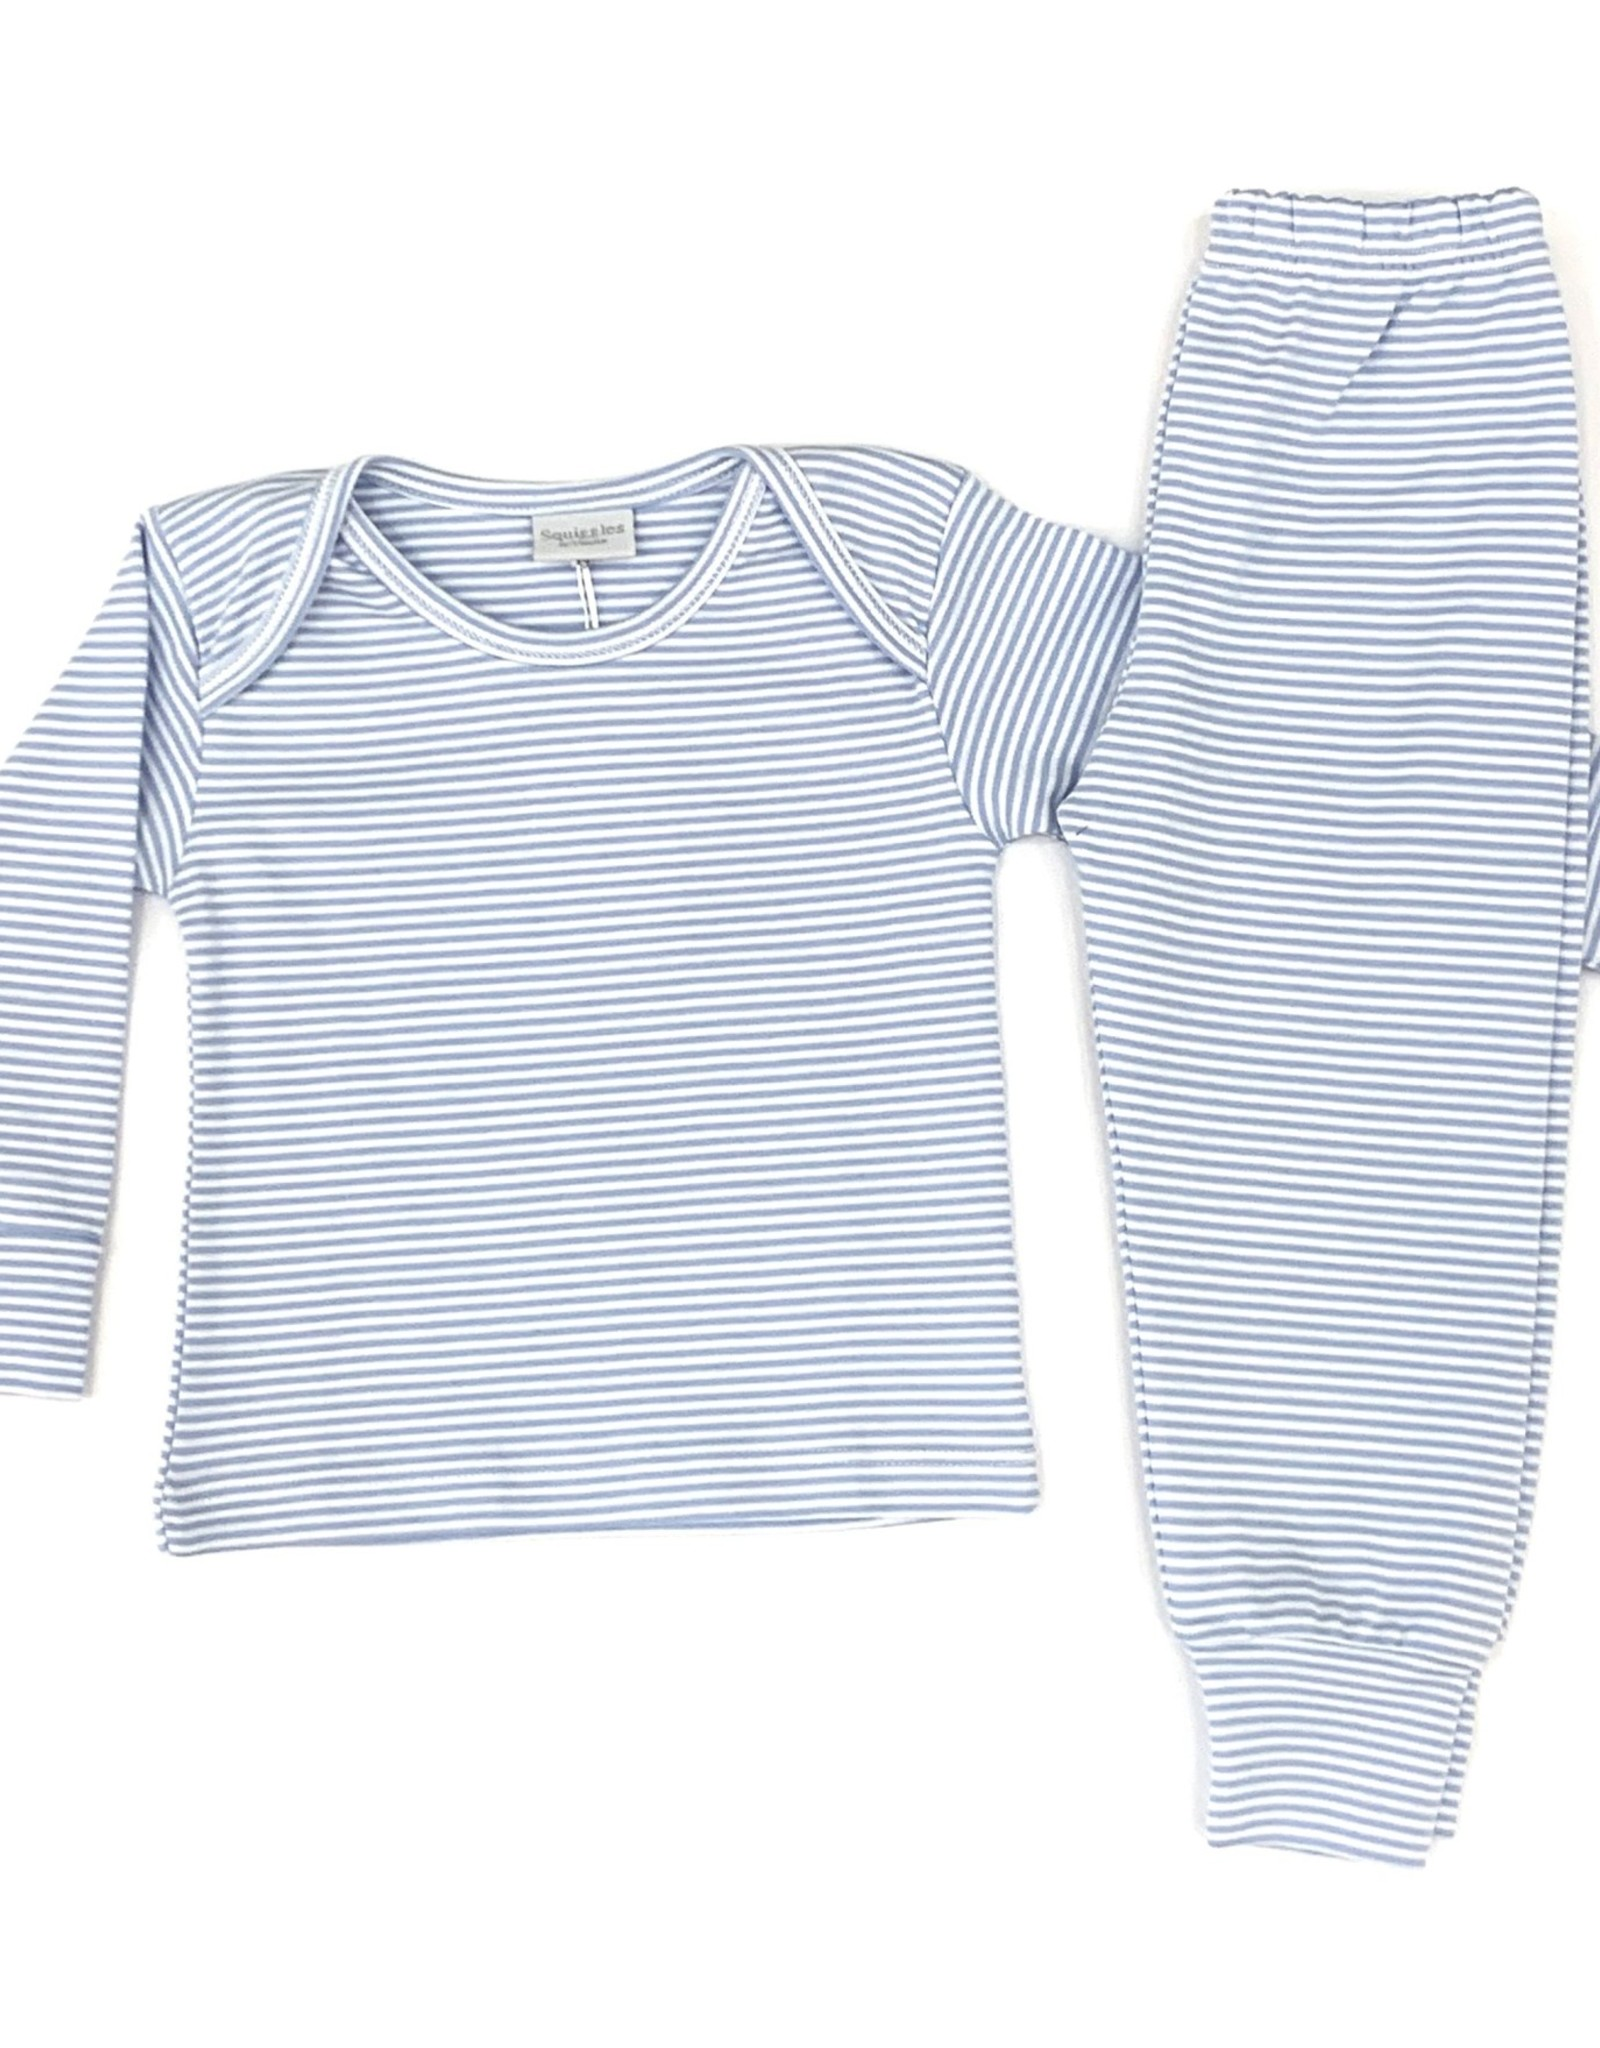 Squiggles Blue and White Stripe Set